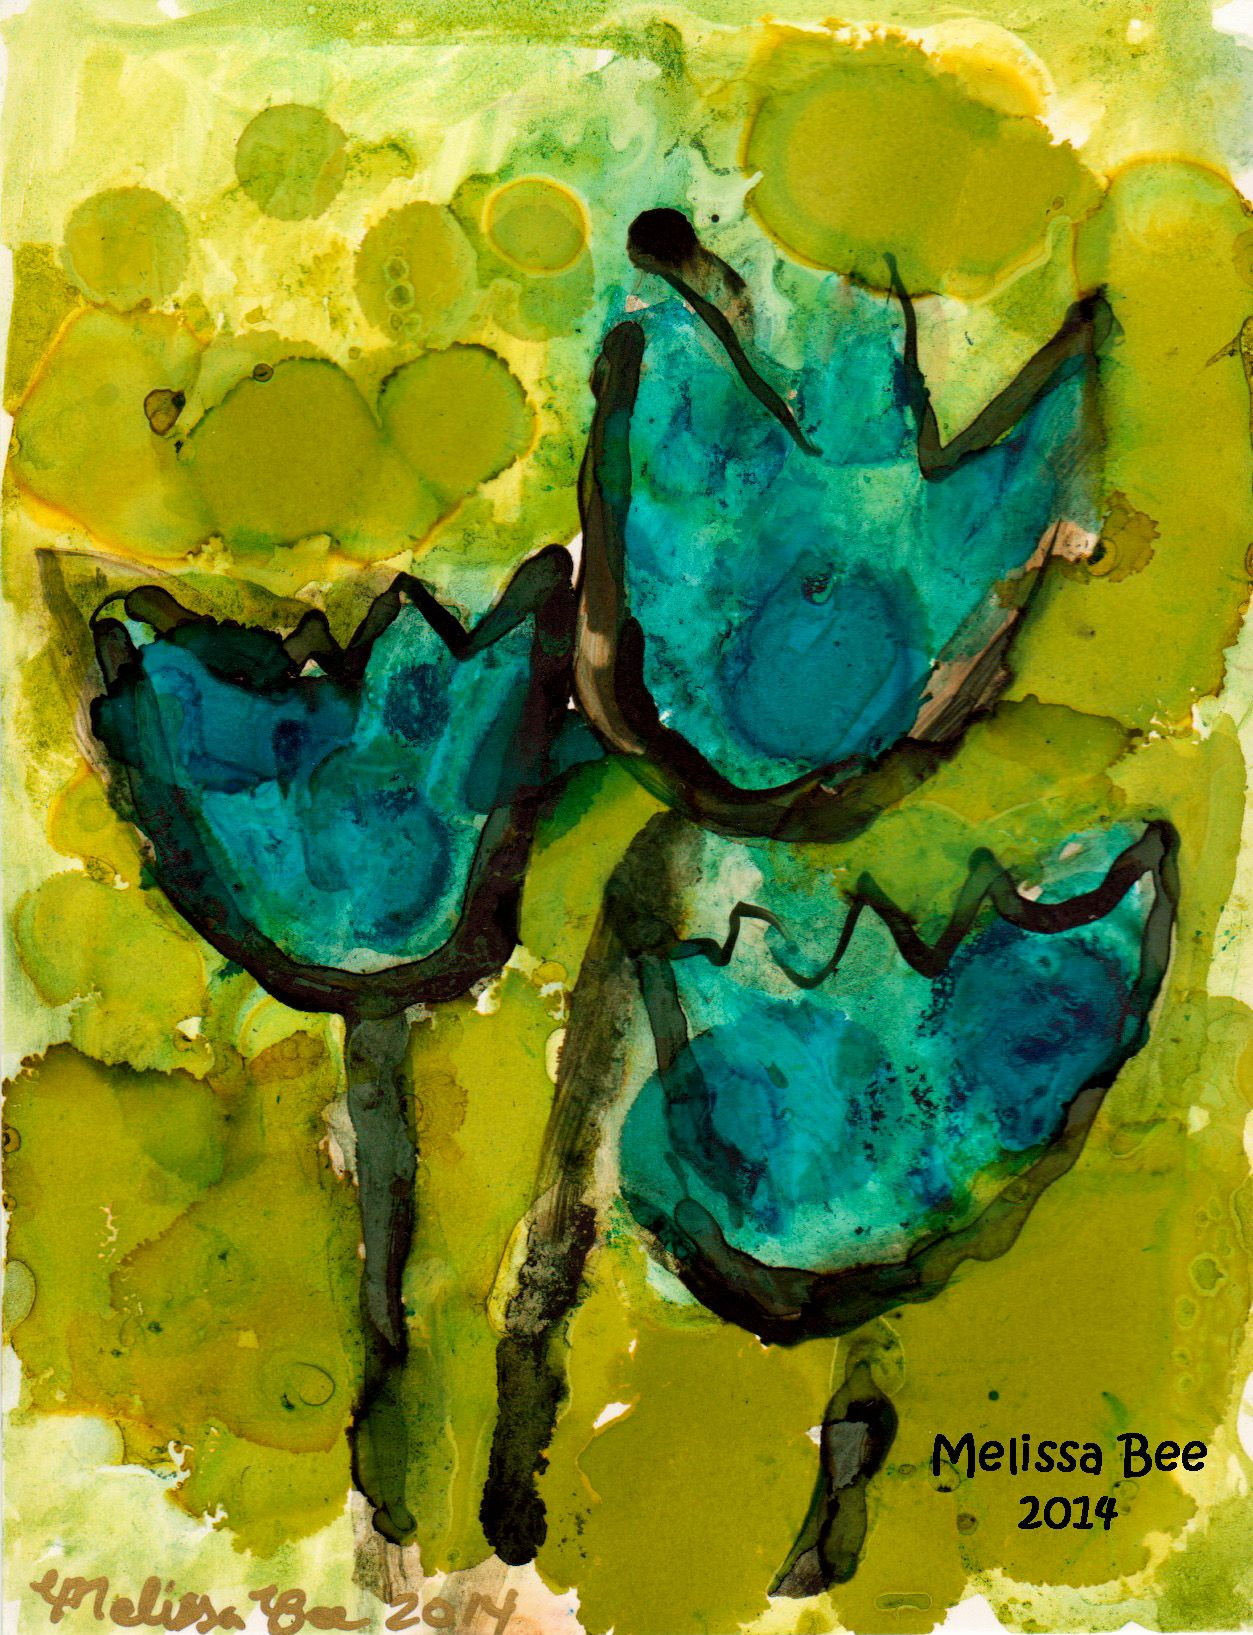 Art - Blue Tulips alcohol ink drawing / painting by Denver artist Melissa Bee